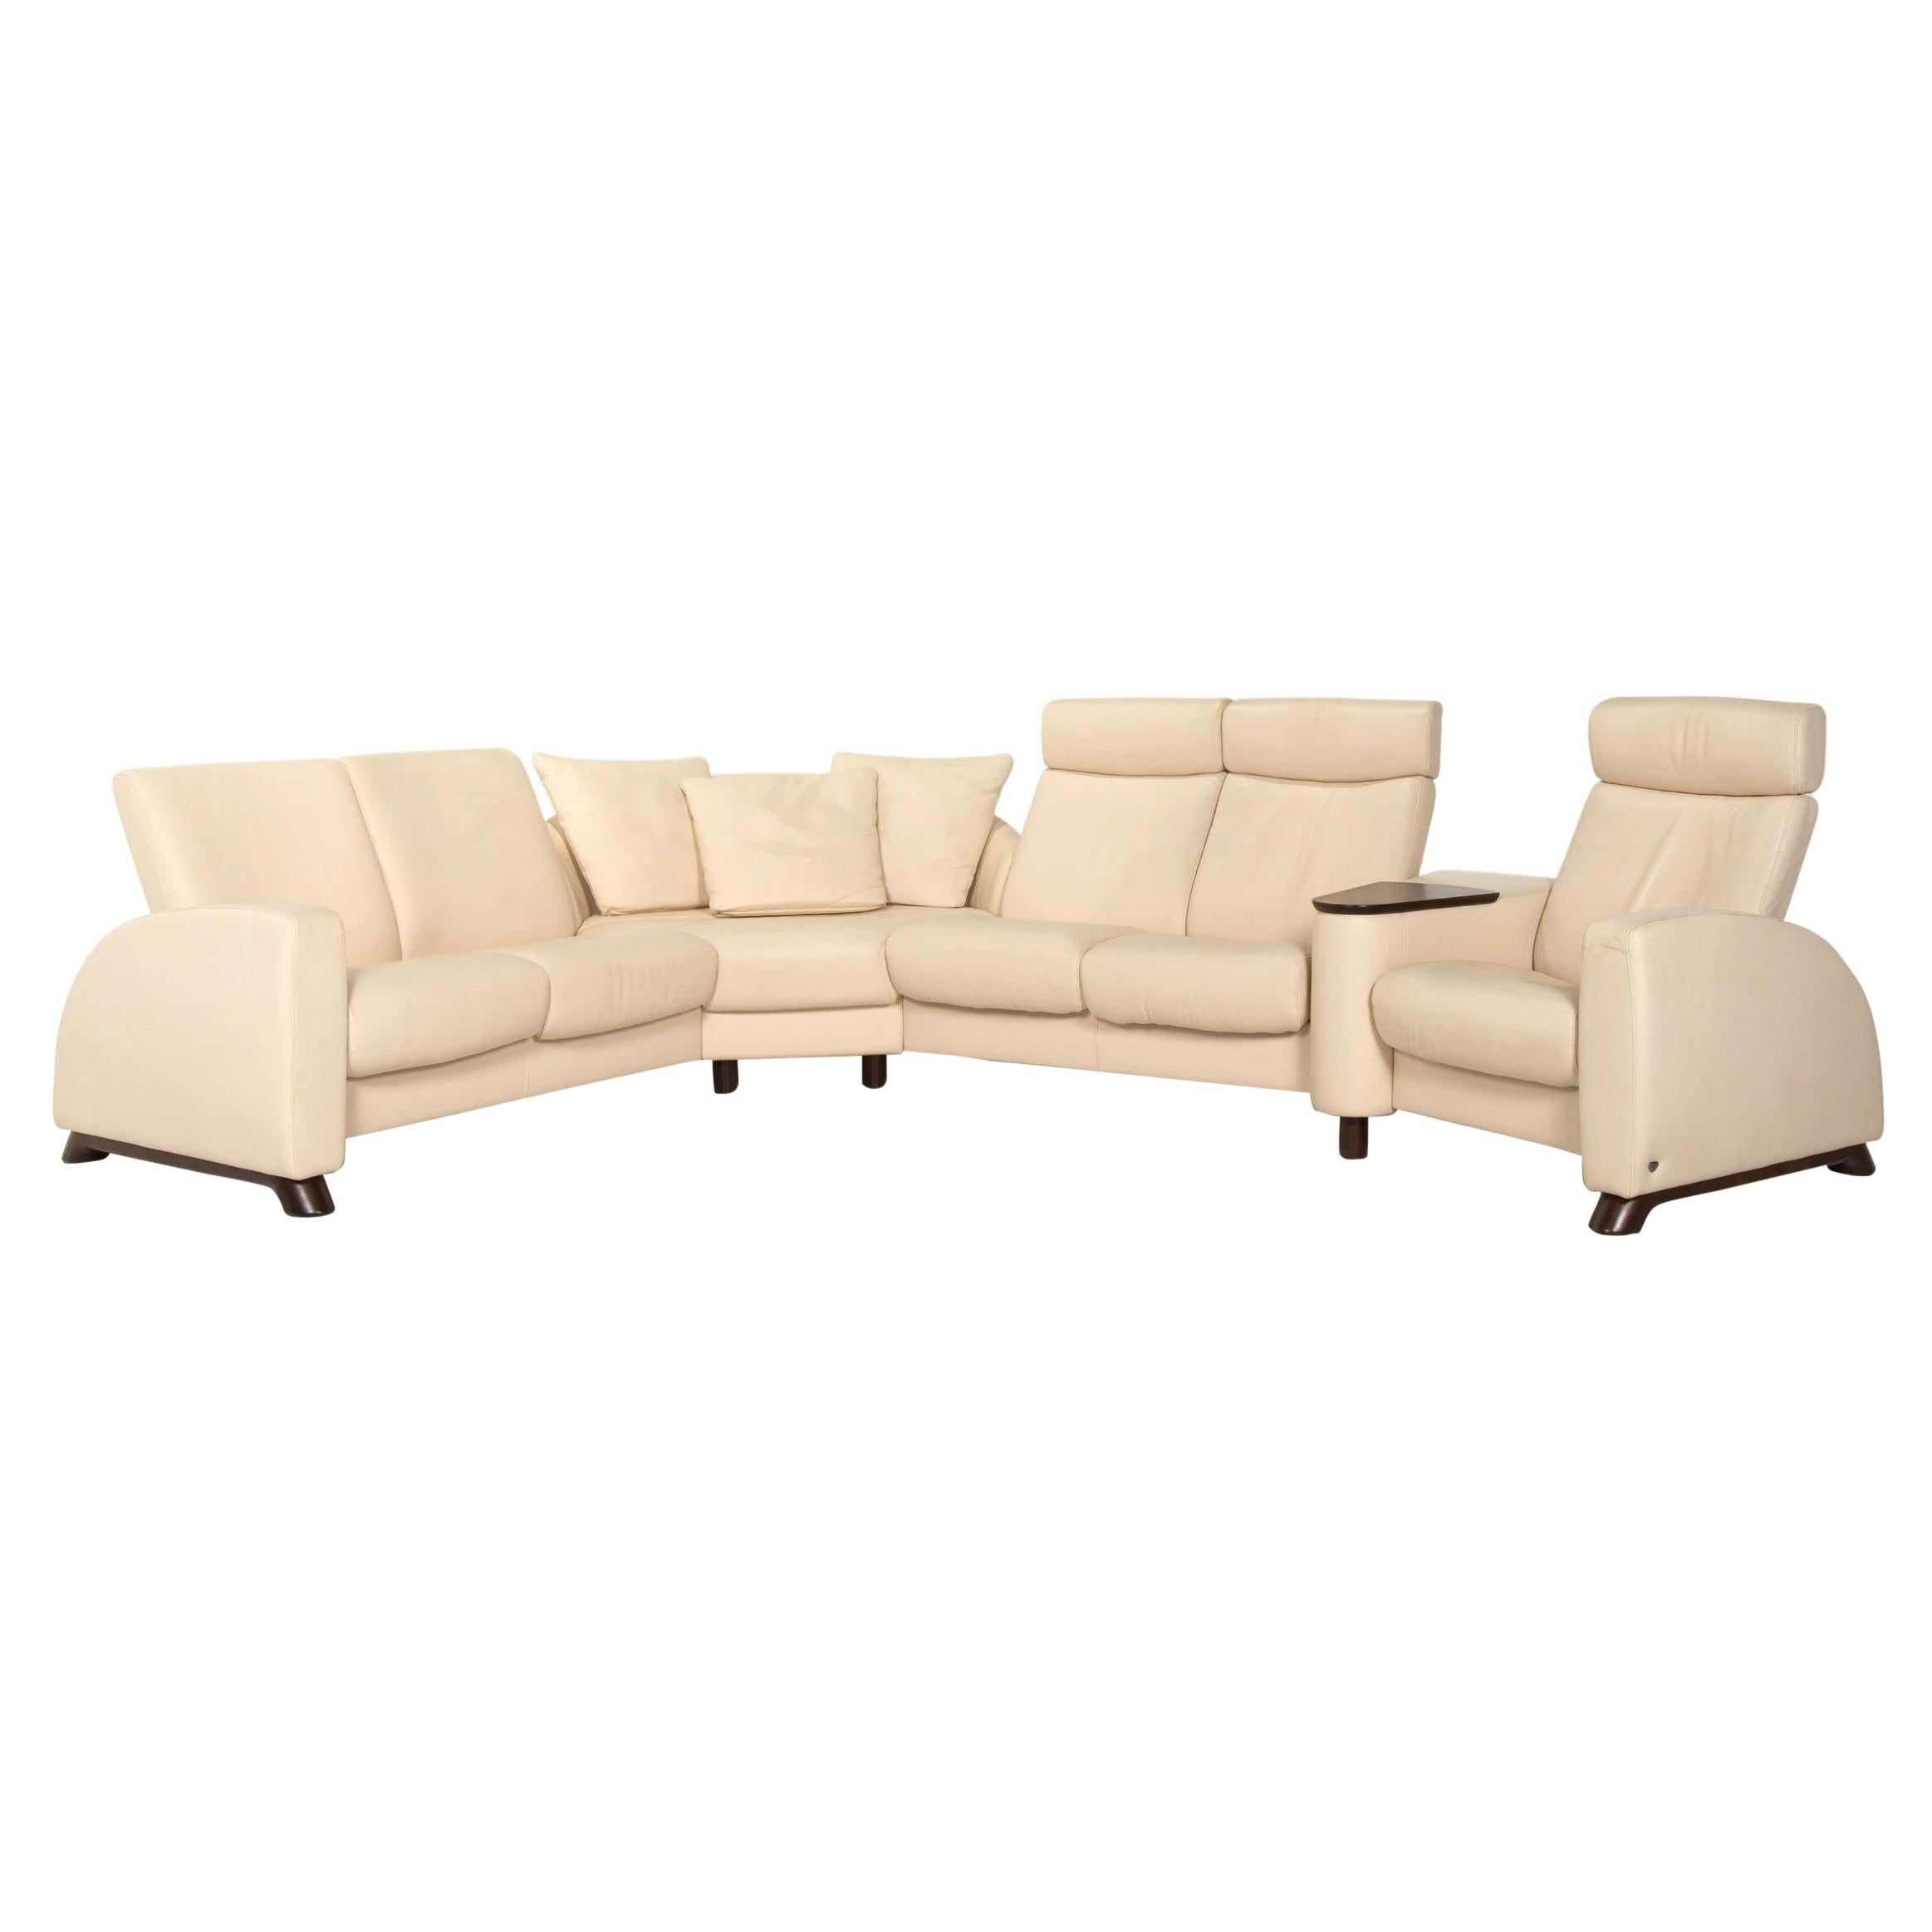 Stressless Arion Leather Corner Sofa Cream Relax Function Sofa Couch